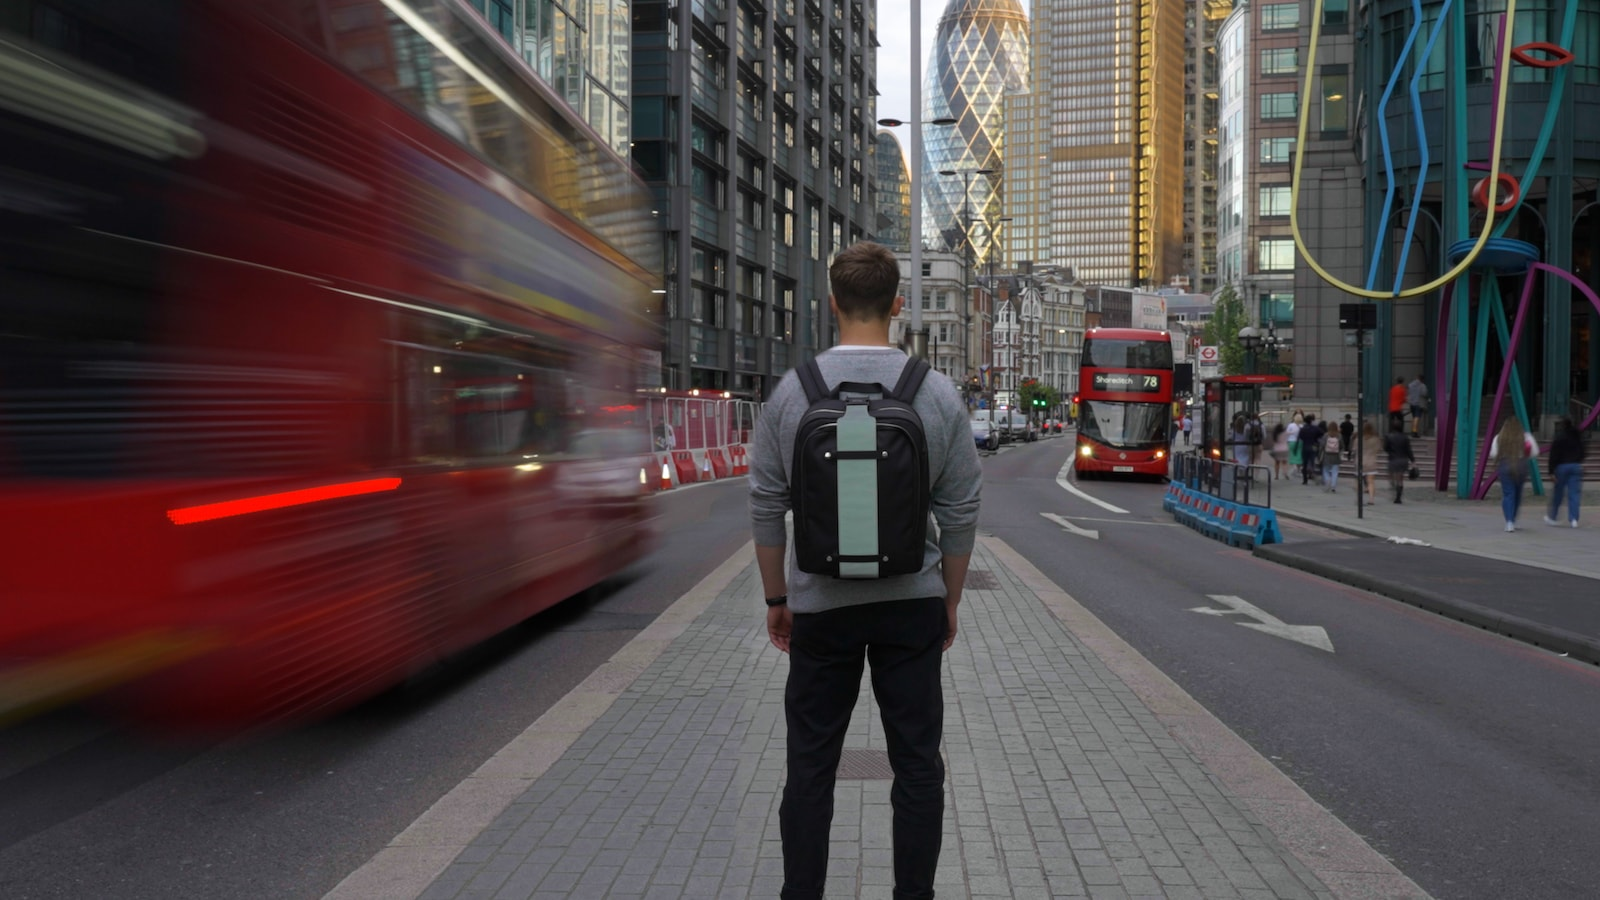 lab.inc Backpack sustainable bag has interchangeable straps & uses upcycled ocean plastic